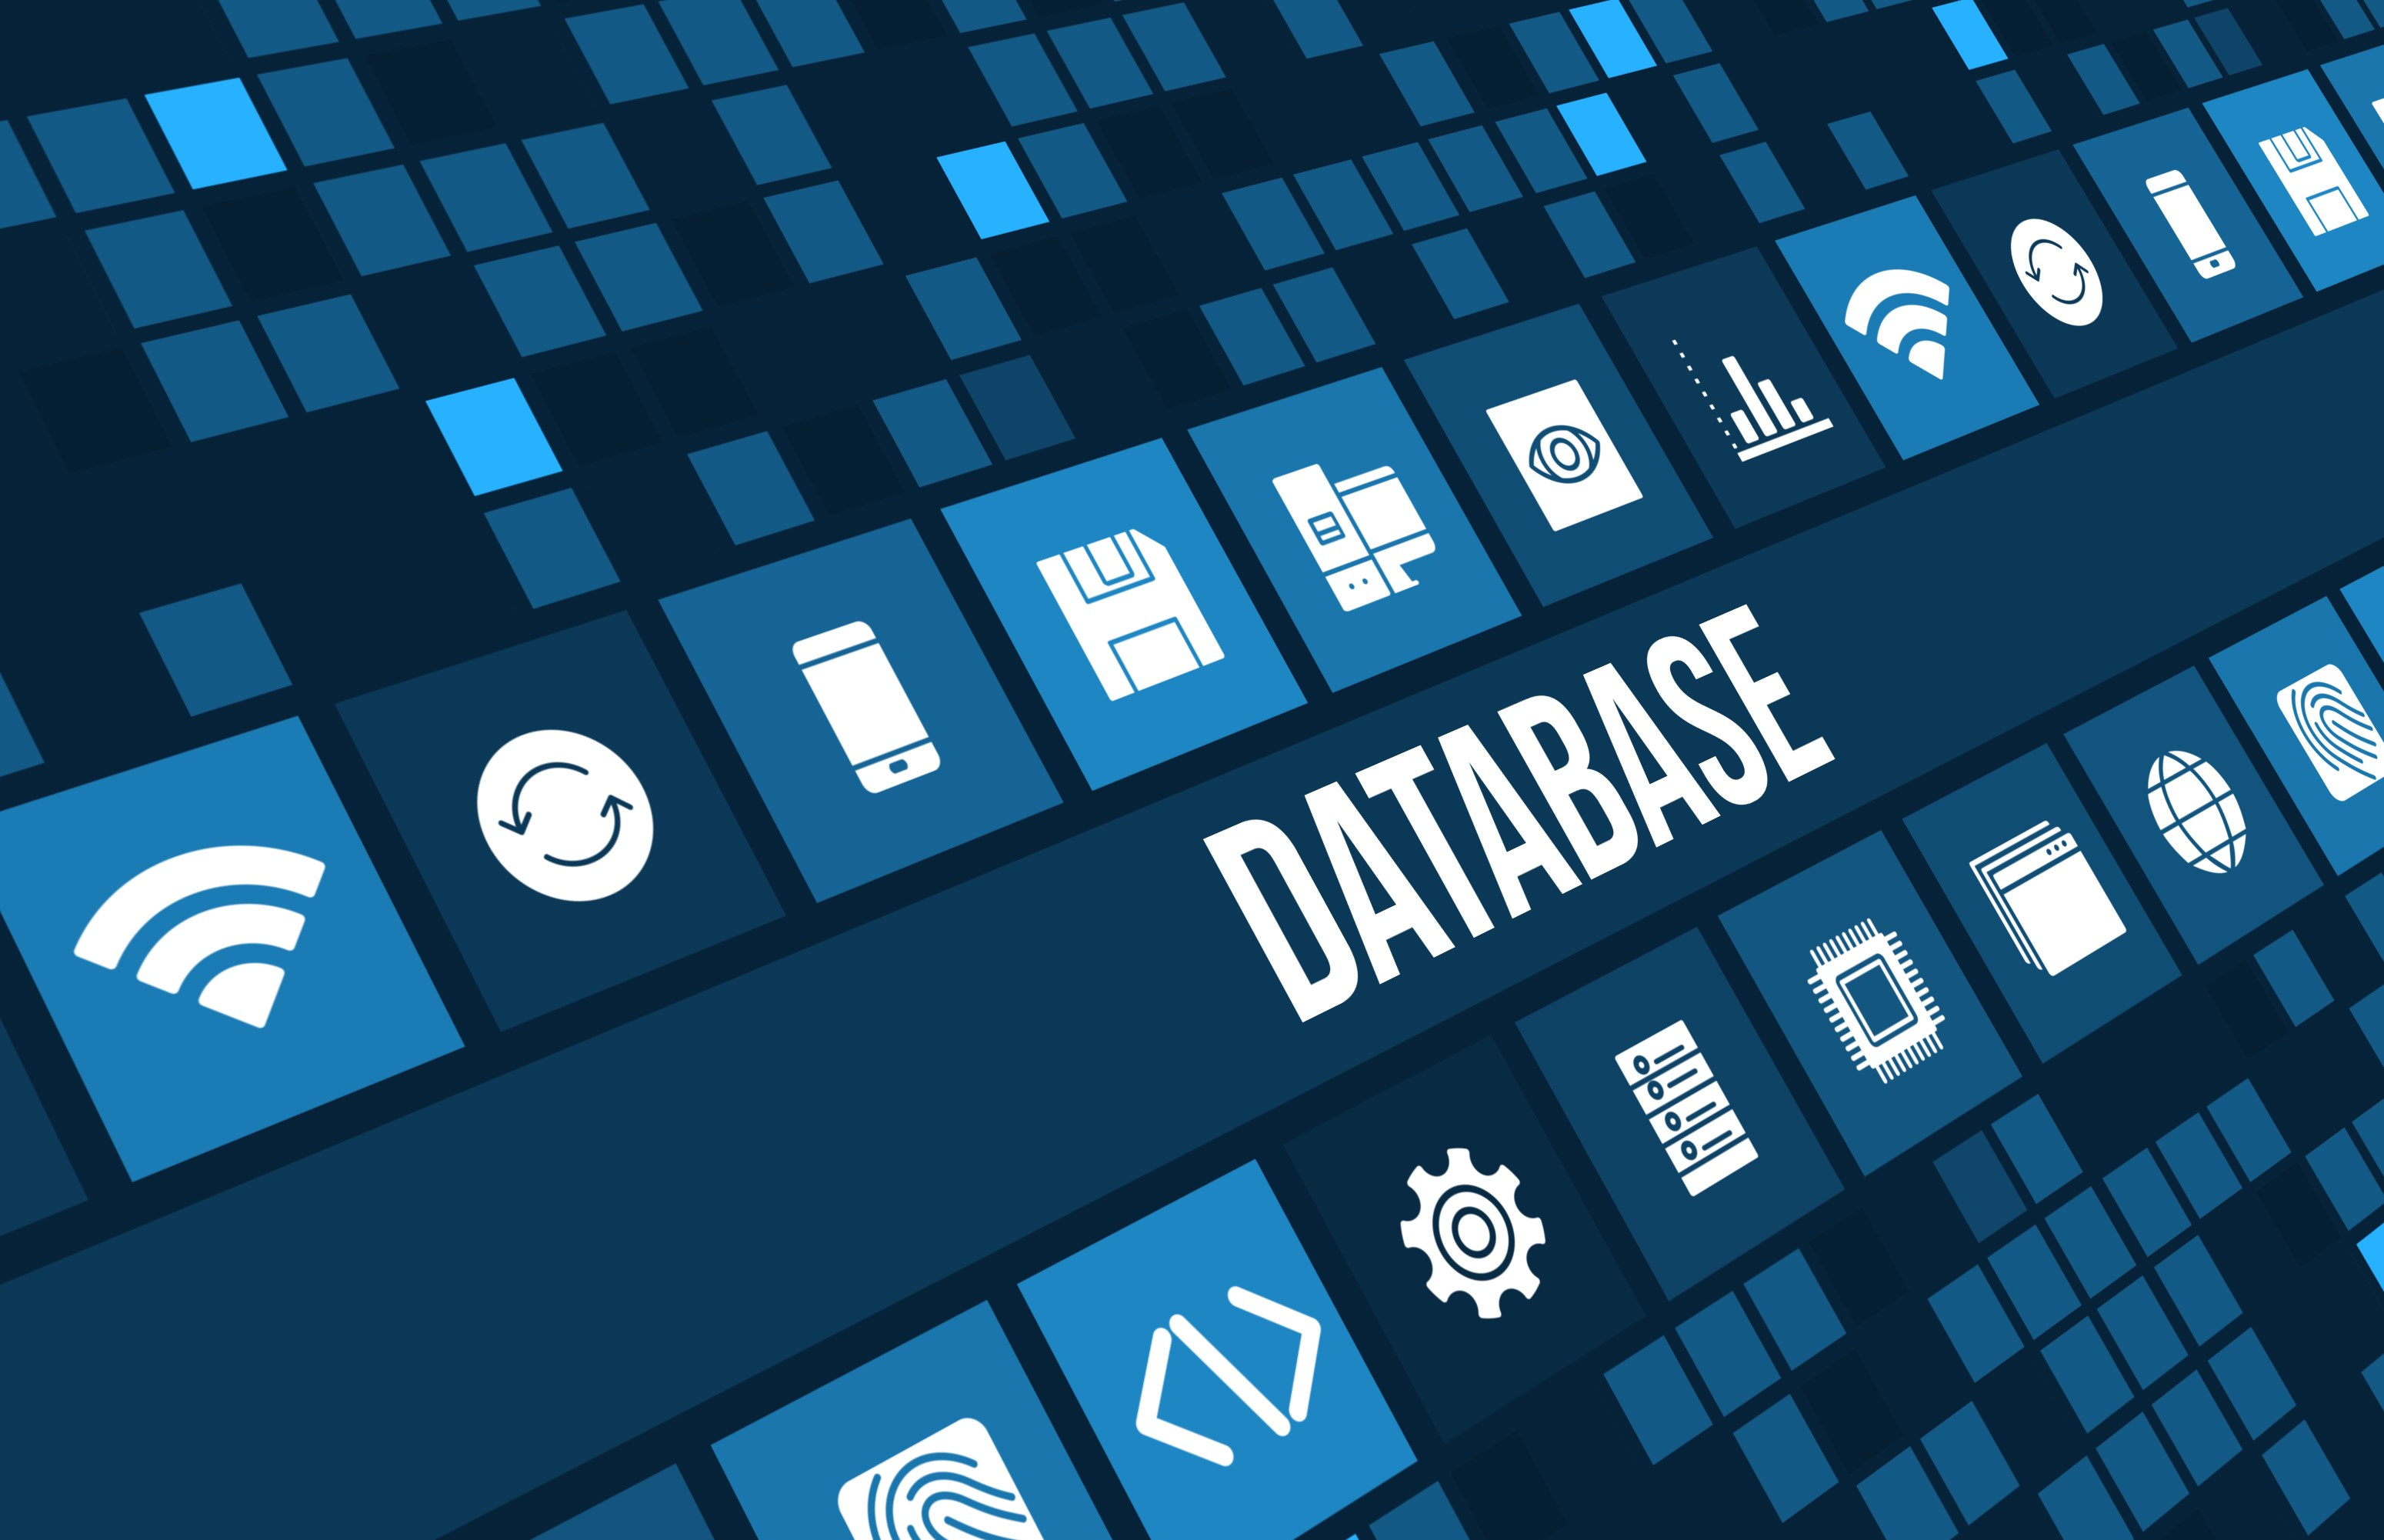 Database with different information